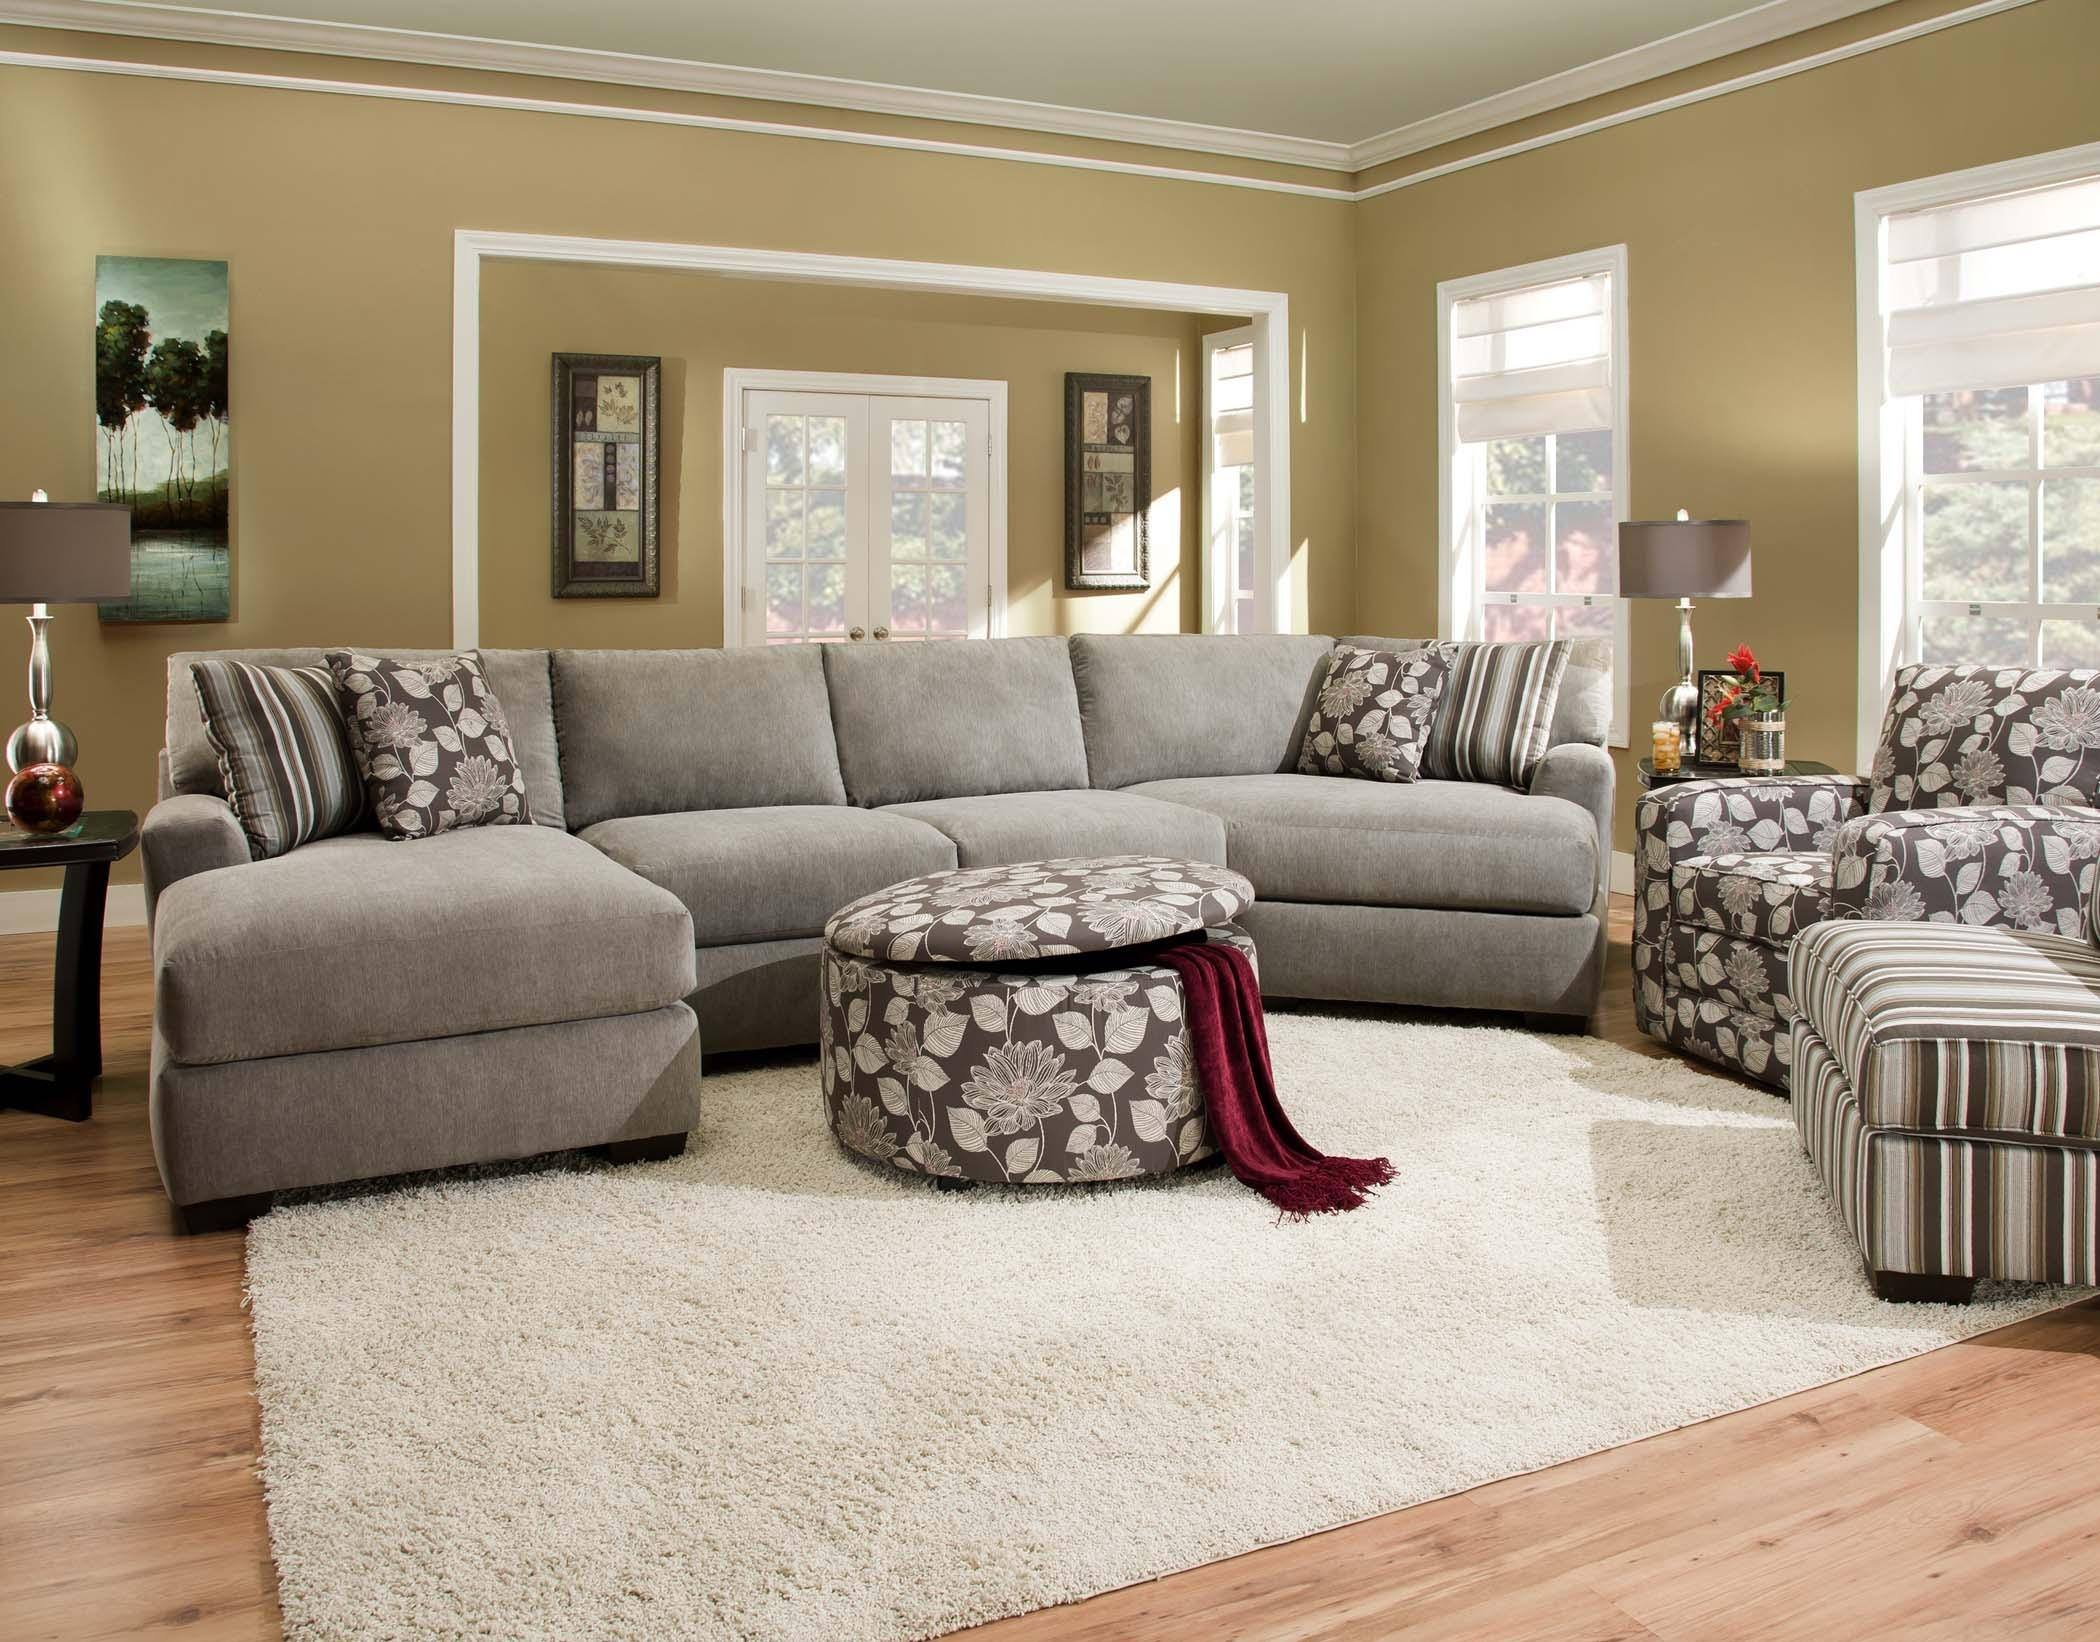 Corinthian 29A0 Sectional Sofa With 4 Seats | Standard Furniture intended for Josephine 2 Piece Sectionals With Raf Sofa (Image 7 of 30)